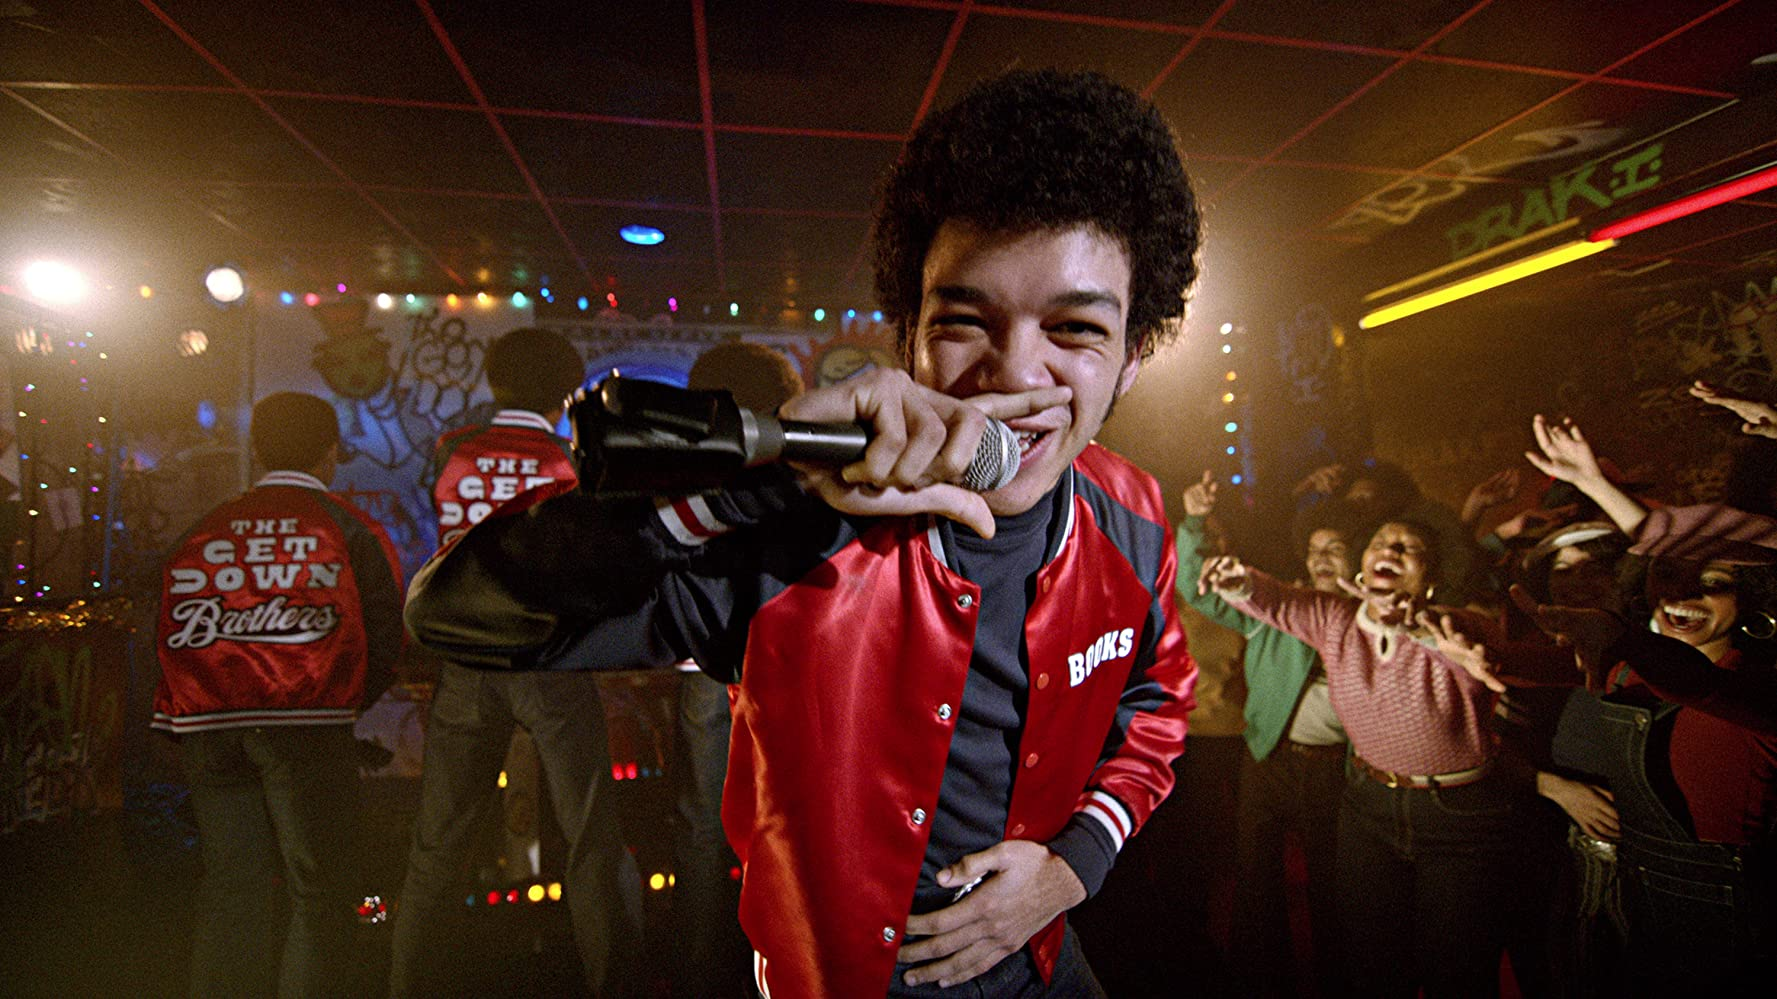 Justice Smith in The Get Down (2016)